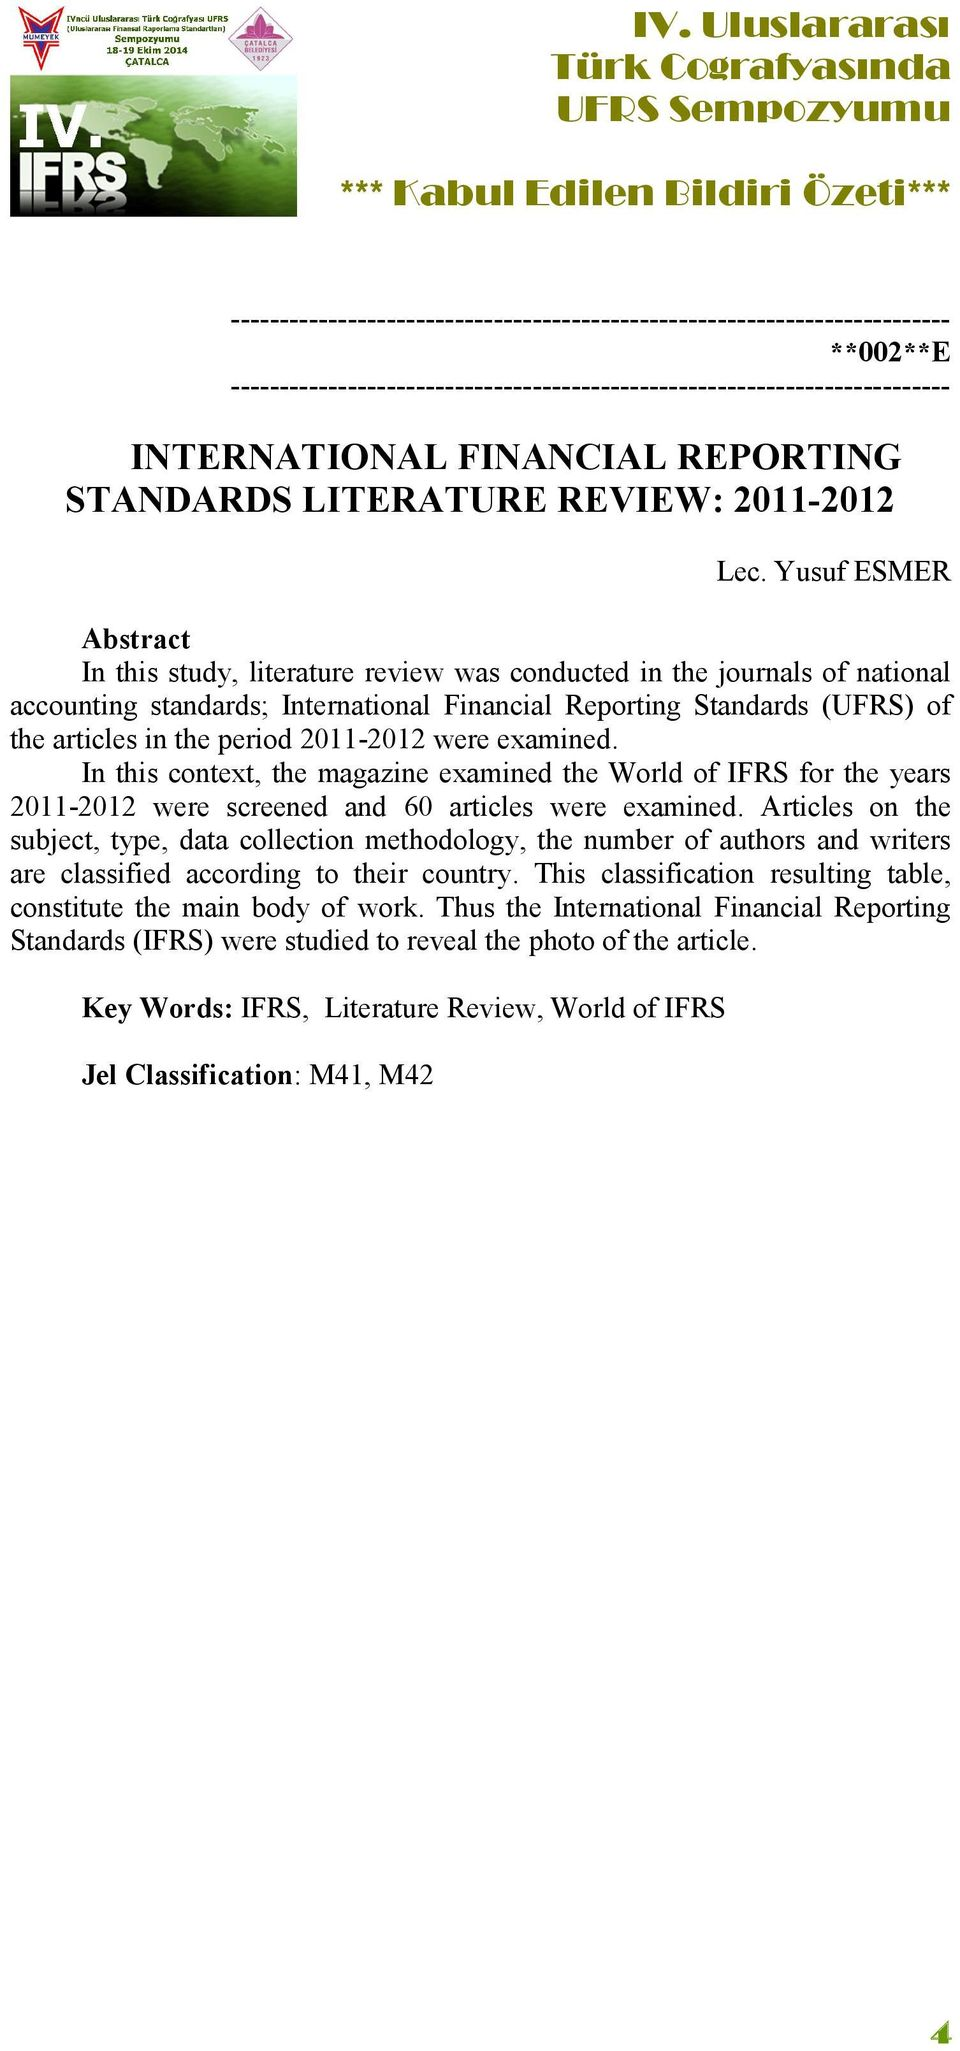 2011-2012 were examined. In this context, the magazine examined the World of IFRS for the years 2011-2012 were screened and 60 articles were examined.